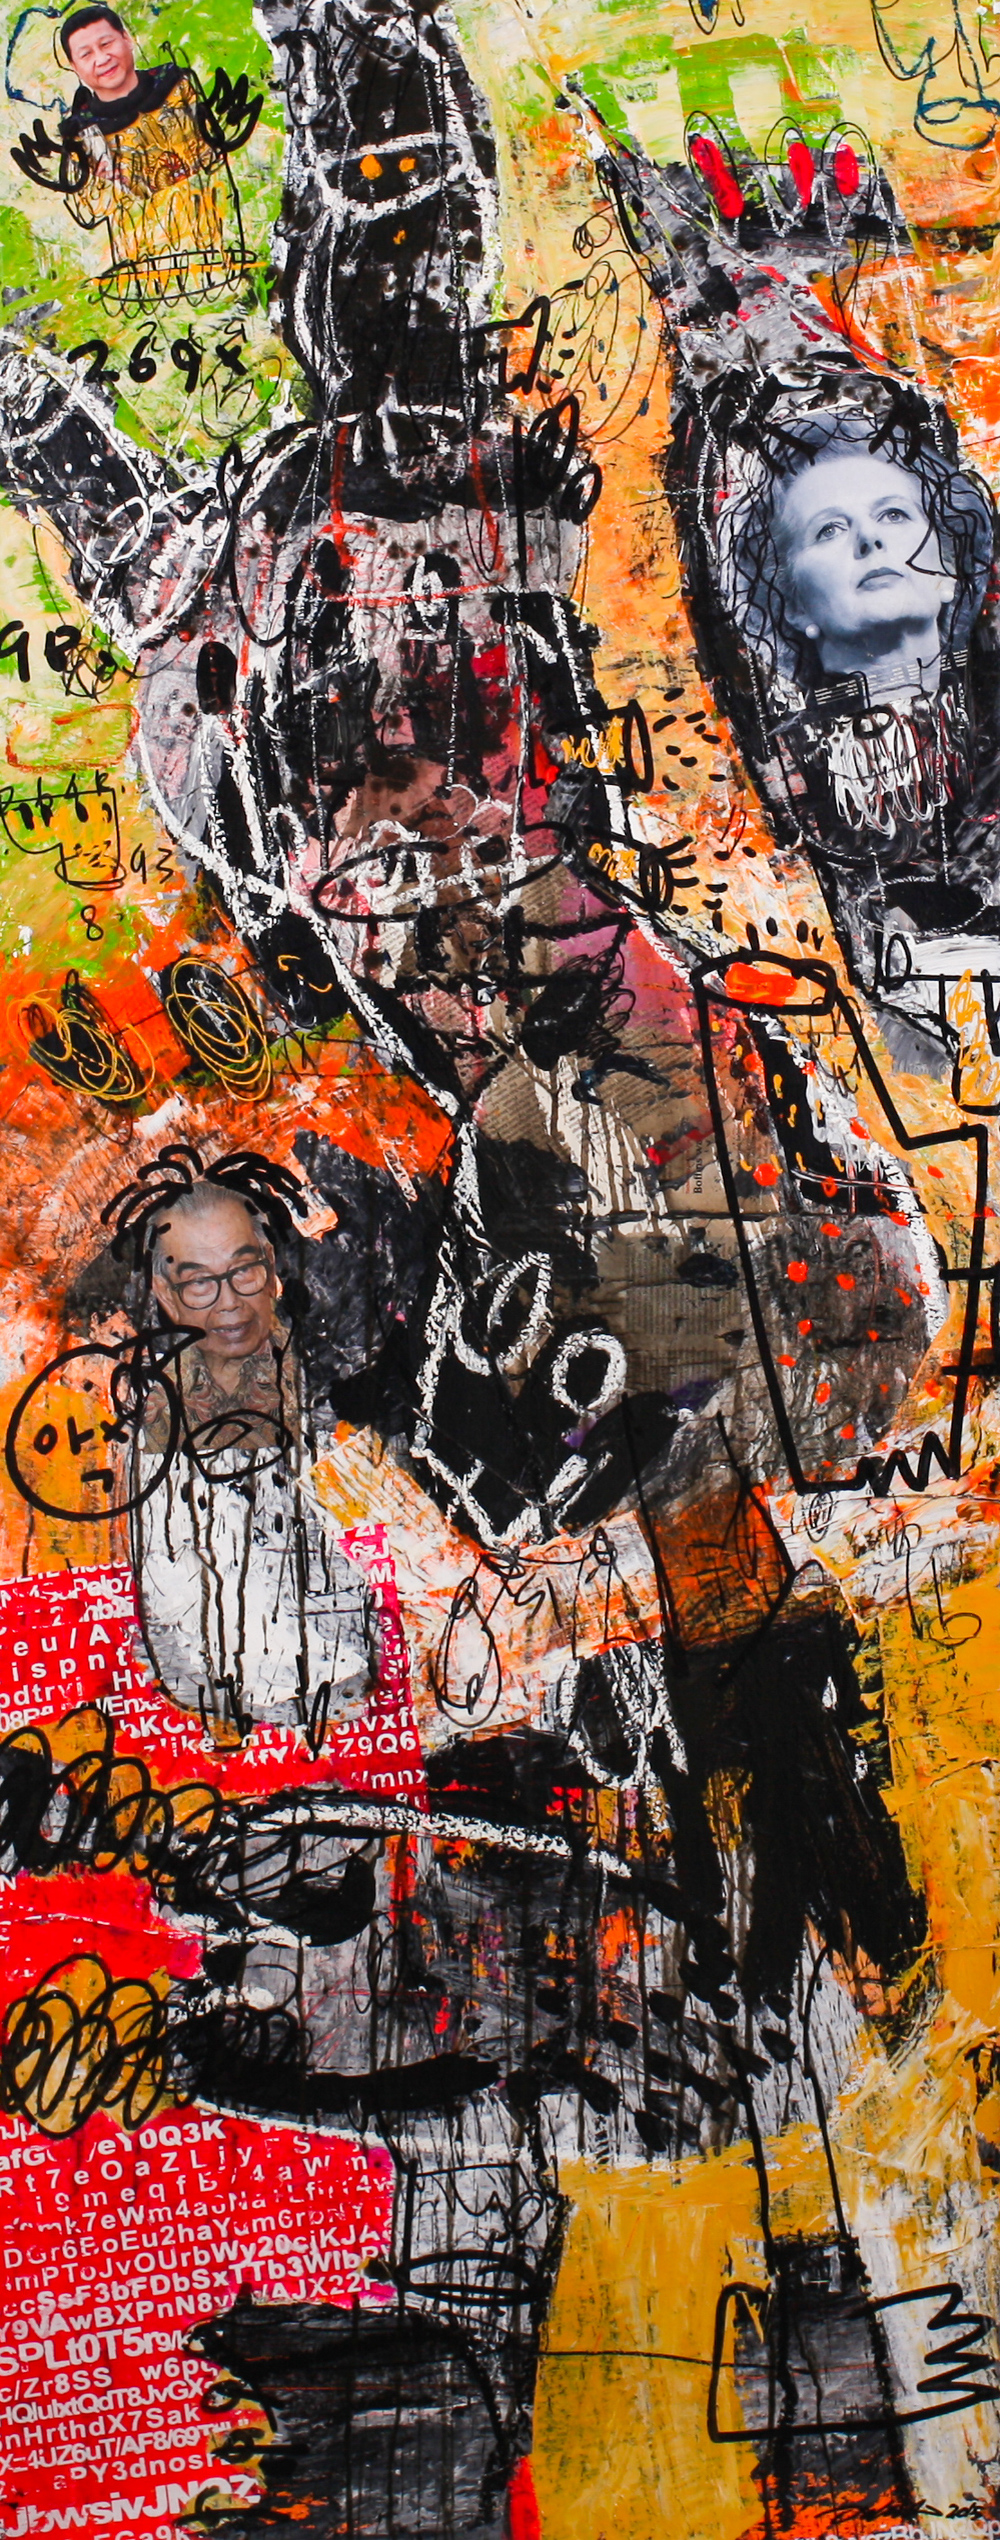 Dedy SUFRIAD,  People   #1 , 2015, Mixed media on canvas, 150 x 60 cm